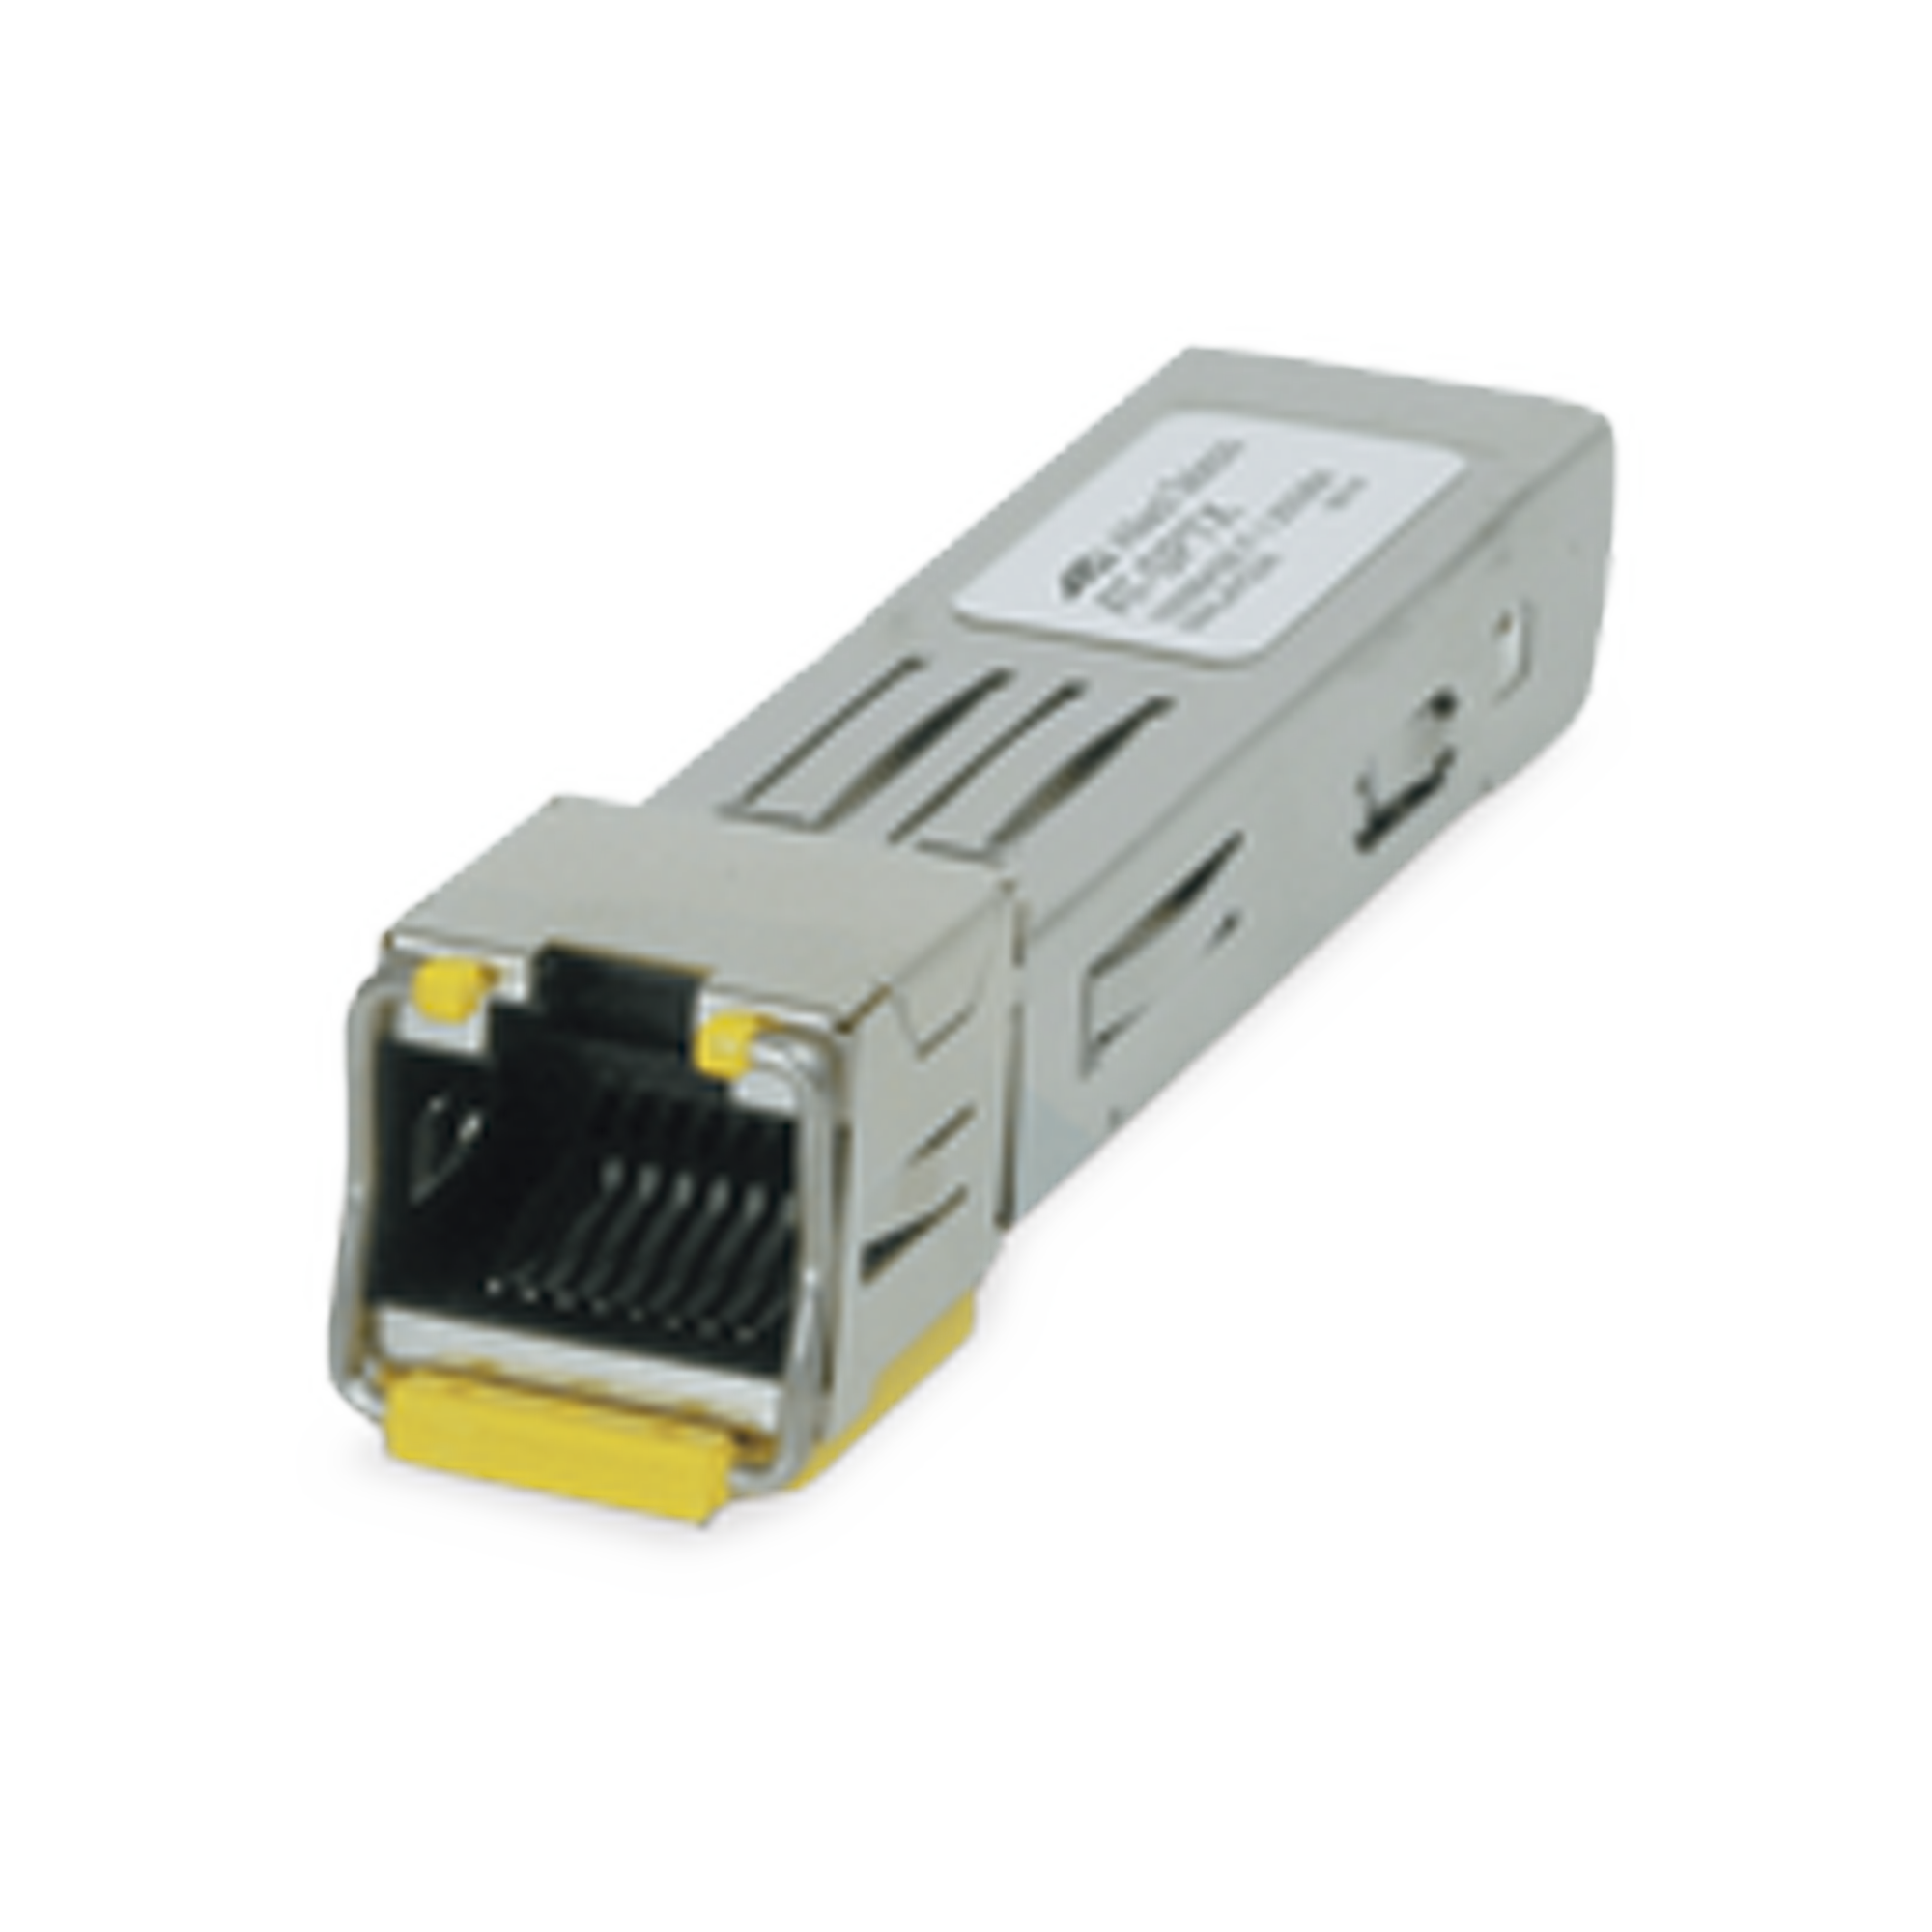 Transceptor MiniGbic SFP 10/100/1000 Mbps, distancia 100 m conector RJ-45 **TAA = Trade Act Agreement Compliant